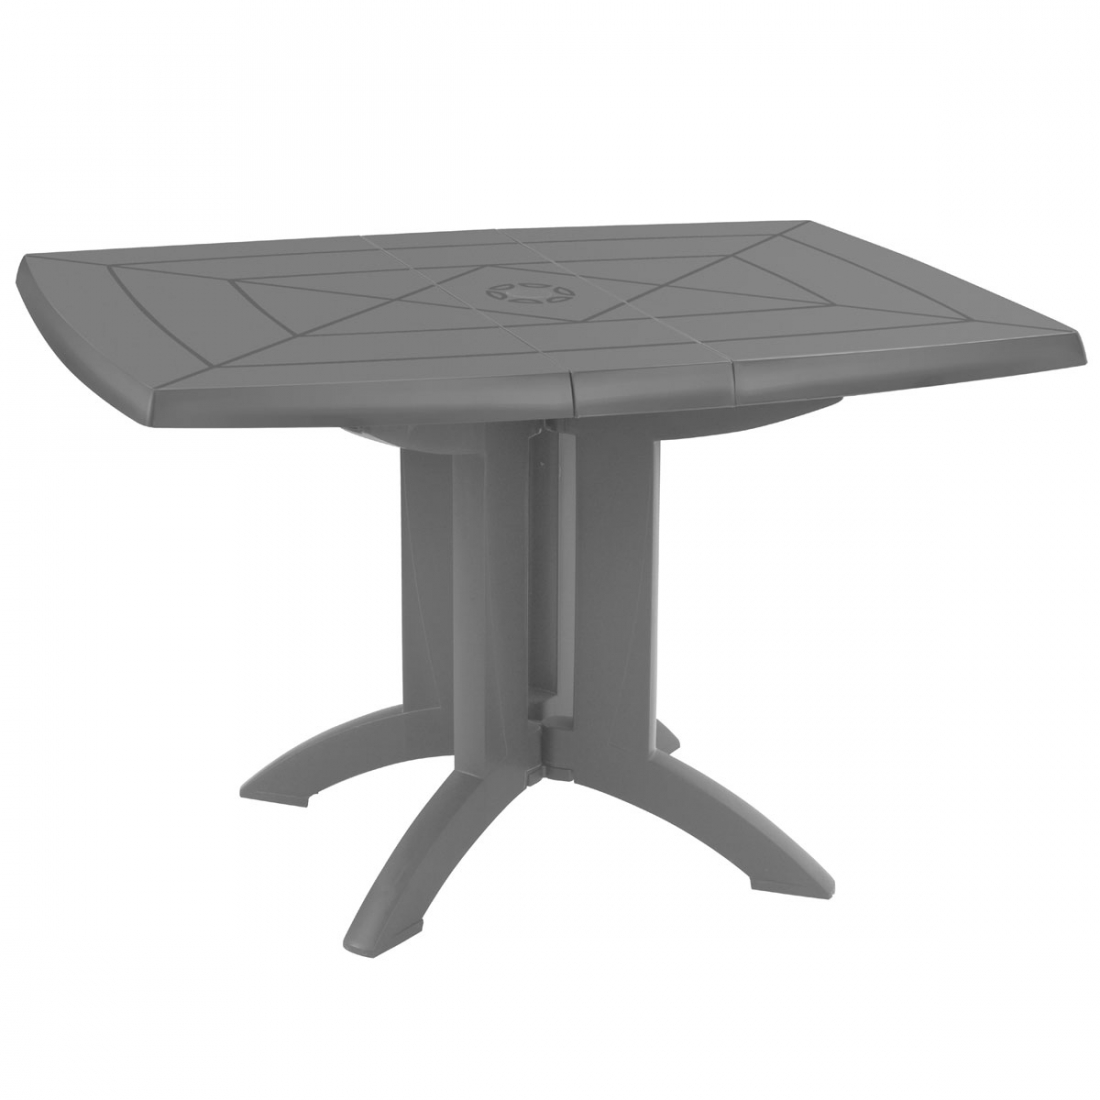 Nettoyer Salon De Jardin Blanc : de jardin design > Tables dextérieur > Tables de jardin > Table